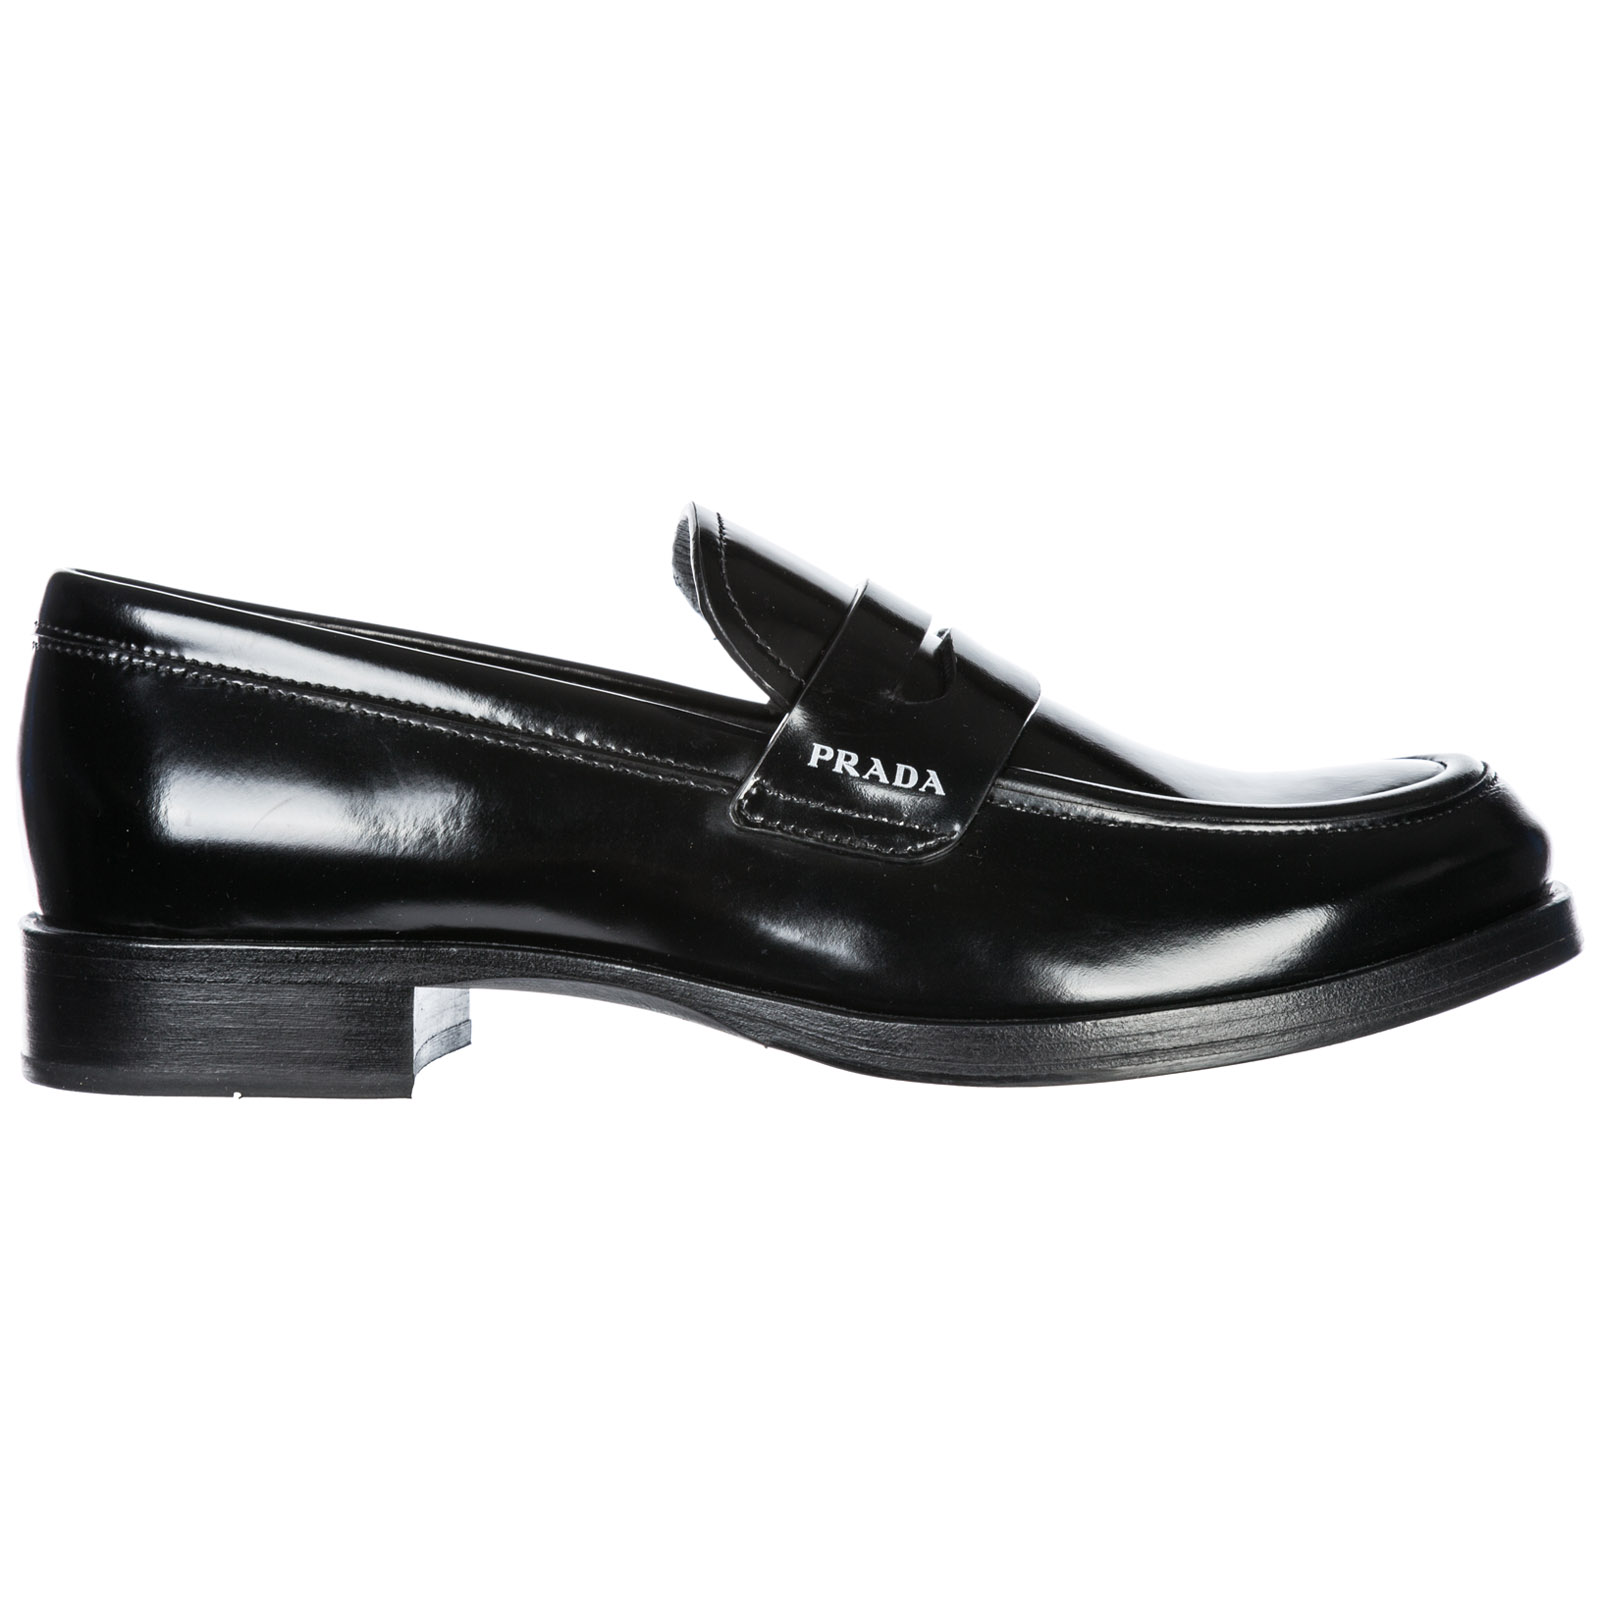 cheap sale new high quality later Women's Leather Loafers Moccasins in Black